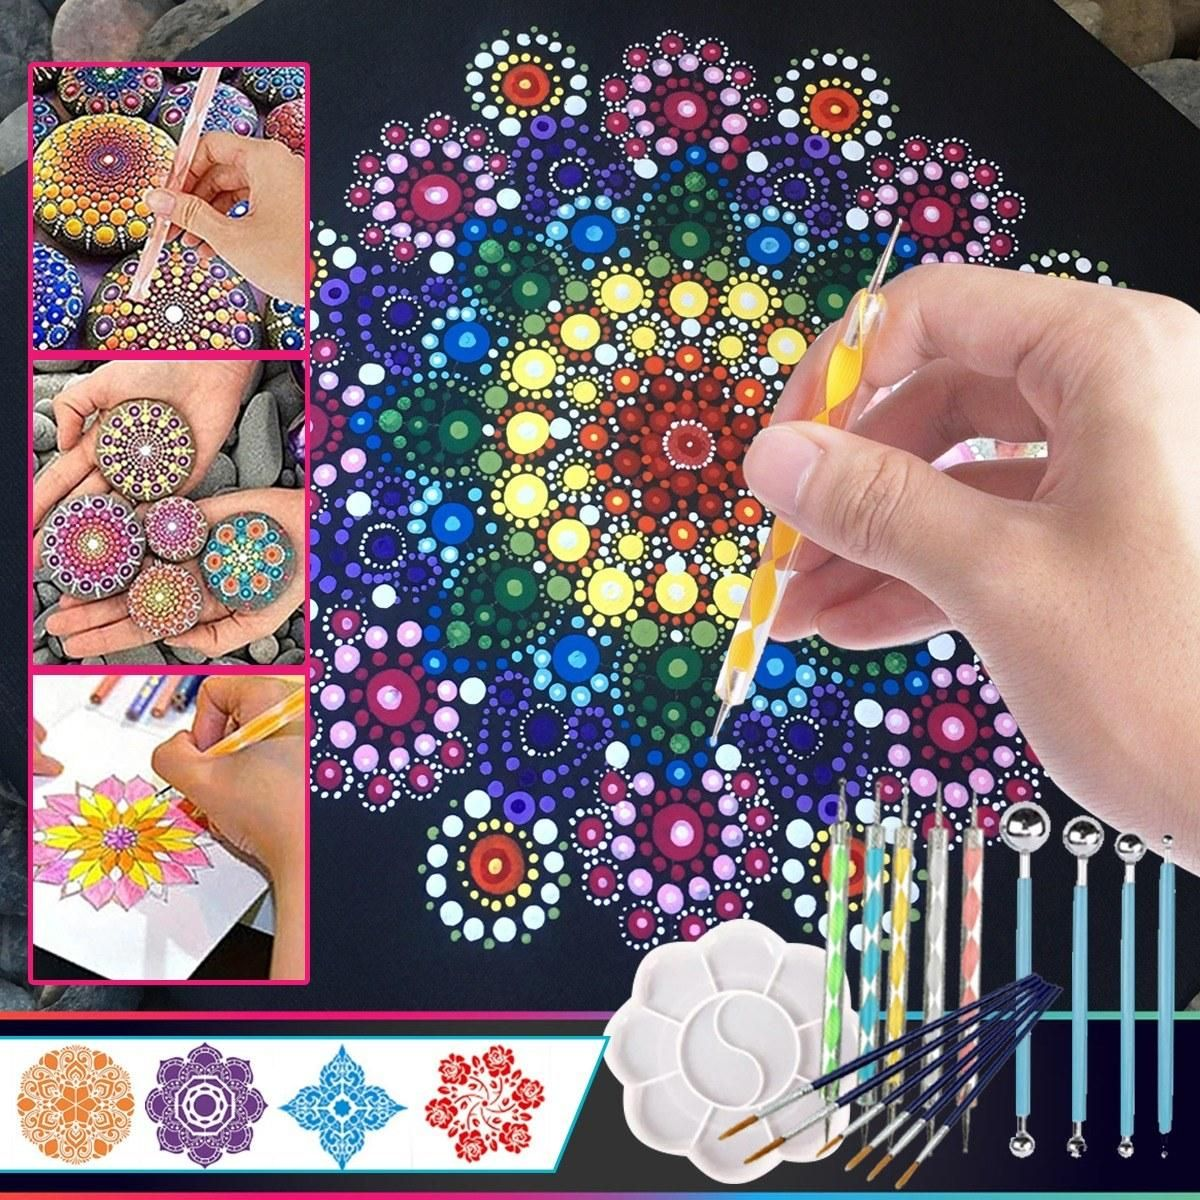 😍Paint Soothing Dotted Mandala Art!🎨